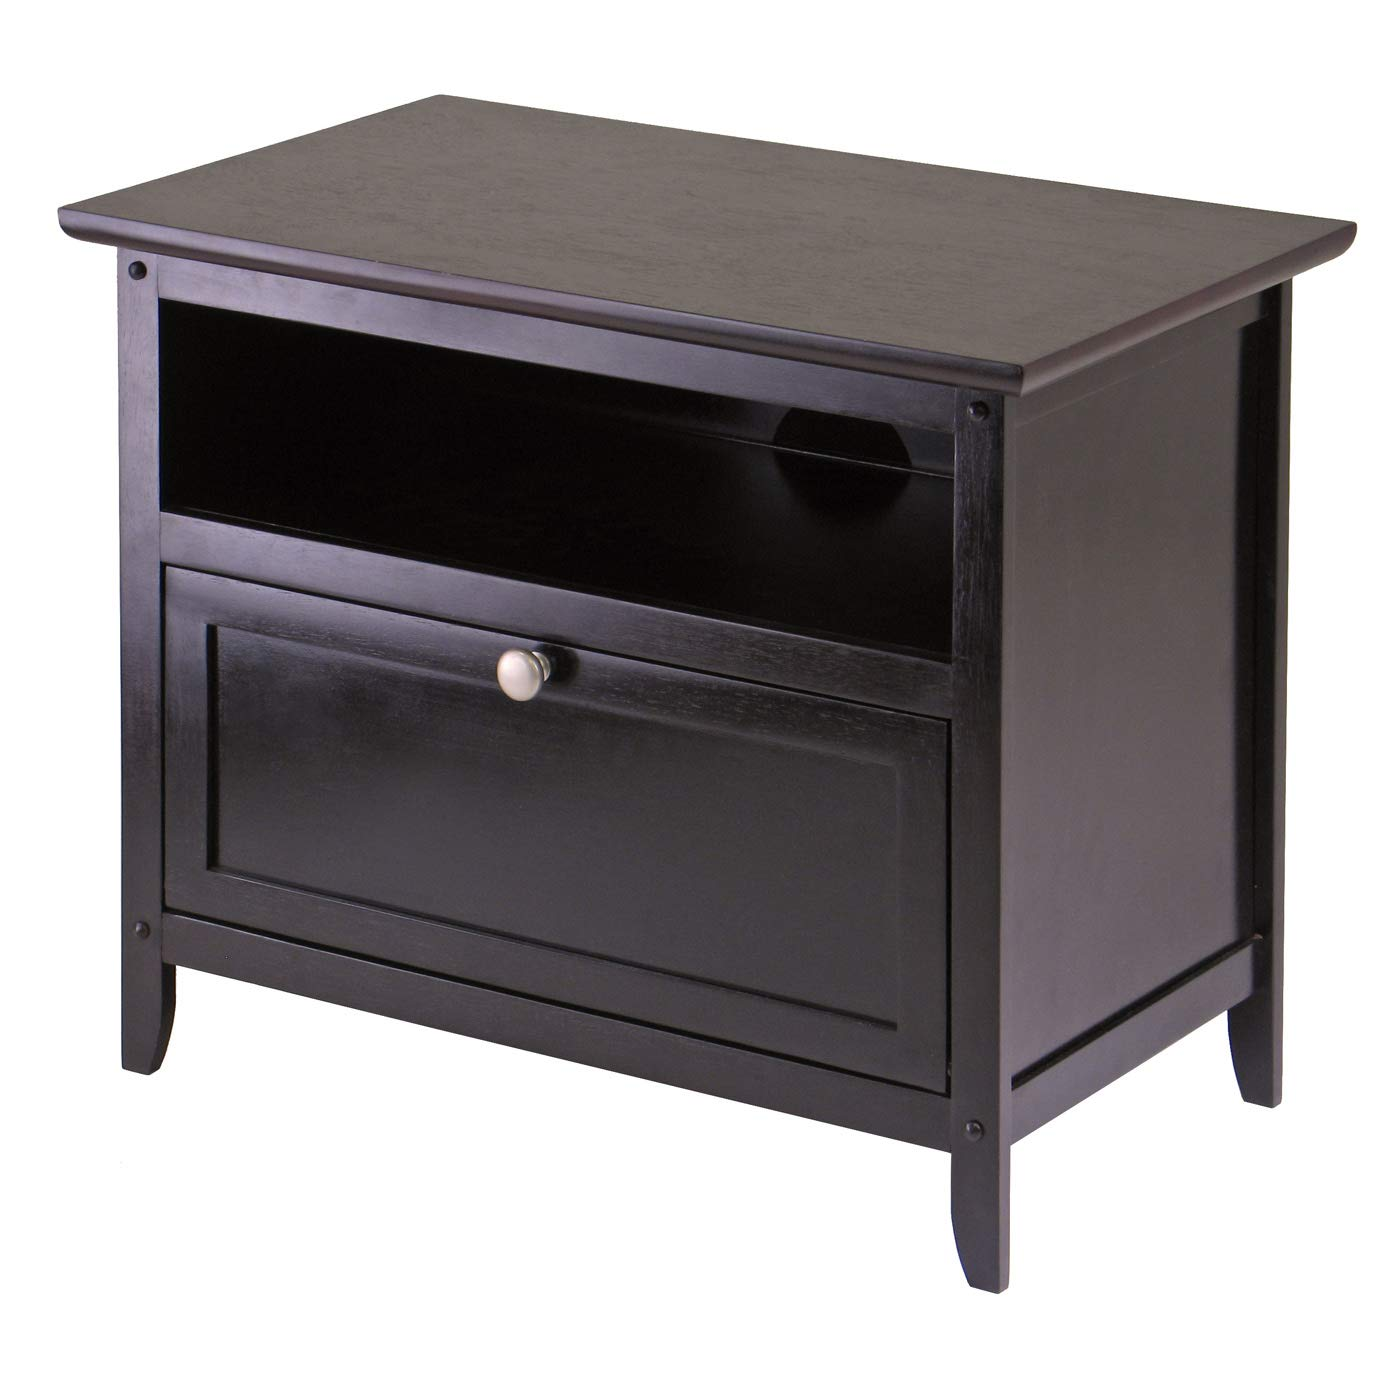 Winsome Wood 92125 Zara Media/Entertainment, Espresso by Winsome Wood